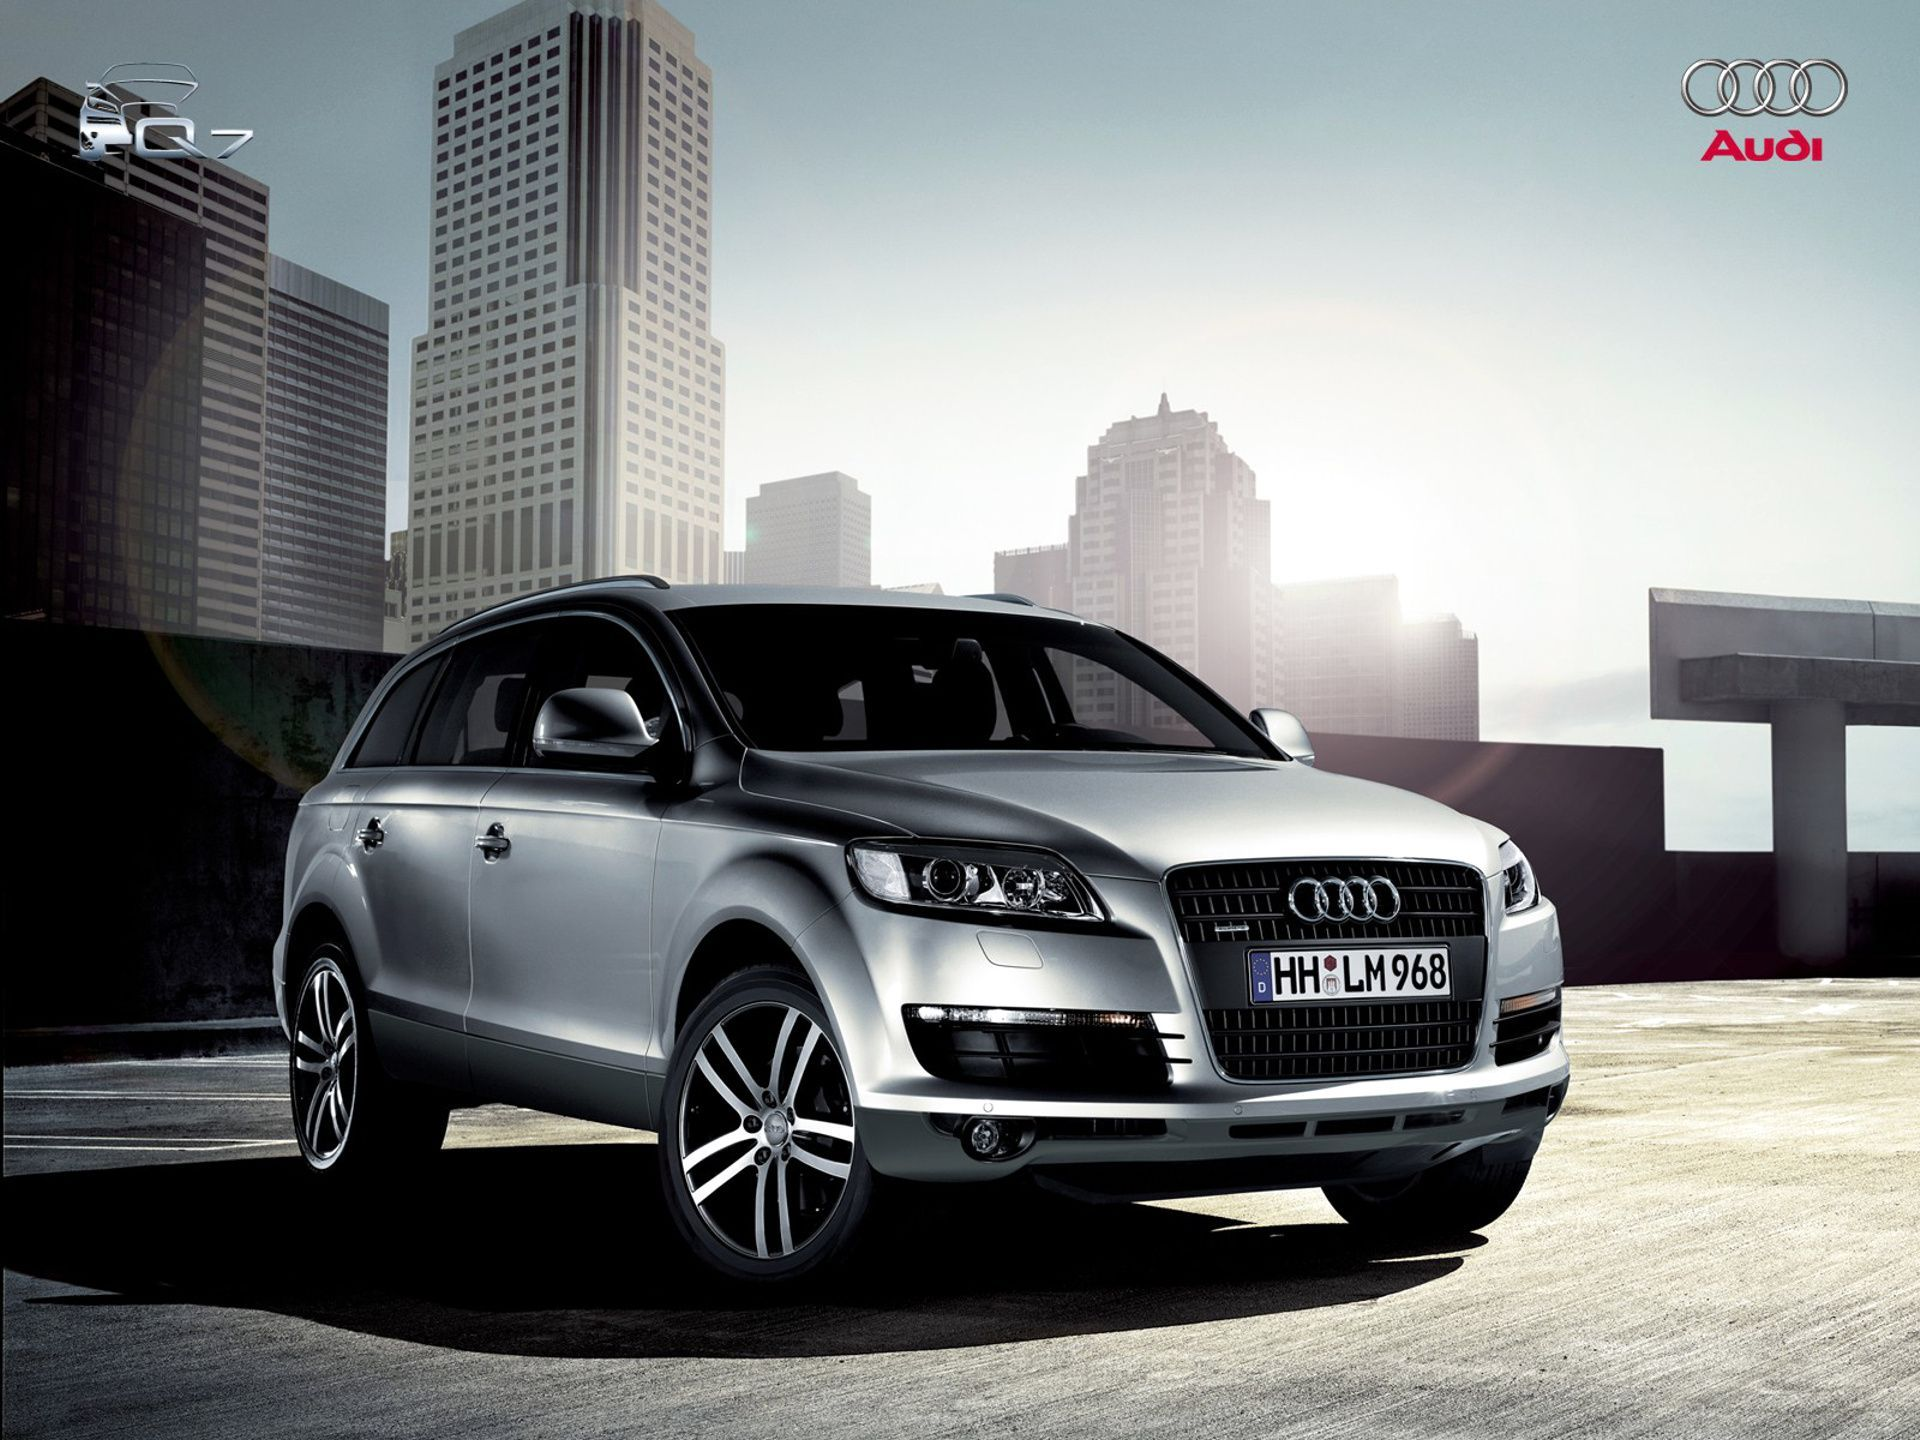 Audi Q7 Wallpapers Top Free Audi Q7 Backgrounds